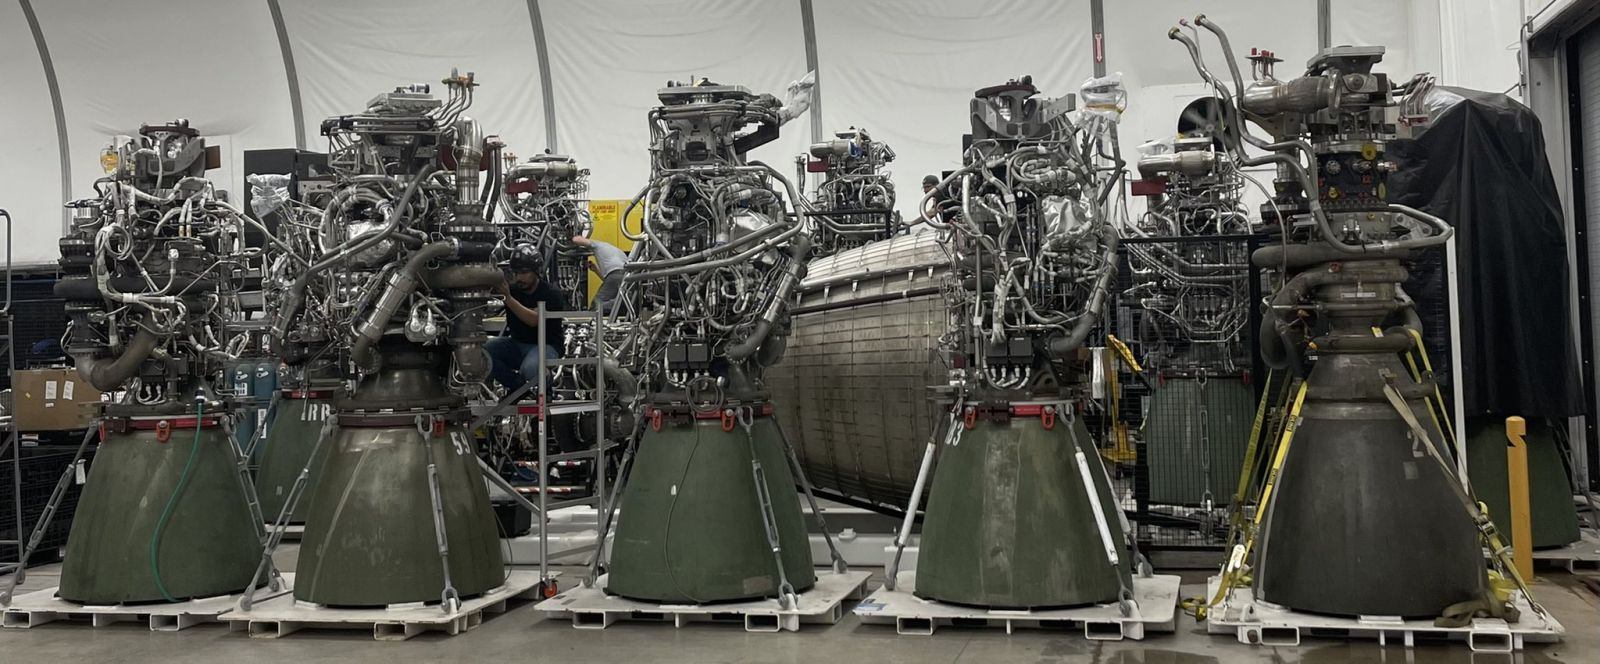 Fellowship of the Raptors: Nine sea level Raptor engines and one Raptor Vacuum engine at SpaceX's Starbase facility in South Texas. Credit: Elon Musk / SpaceX